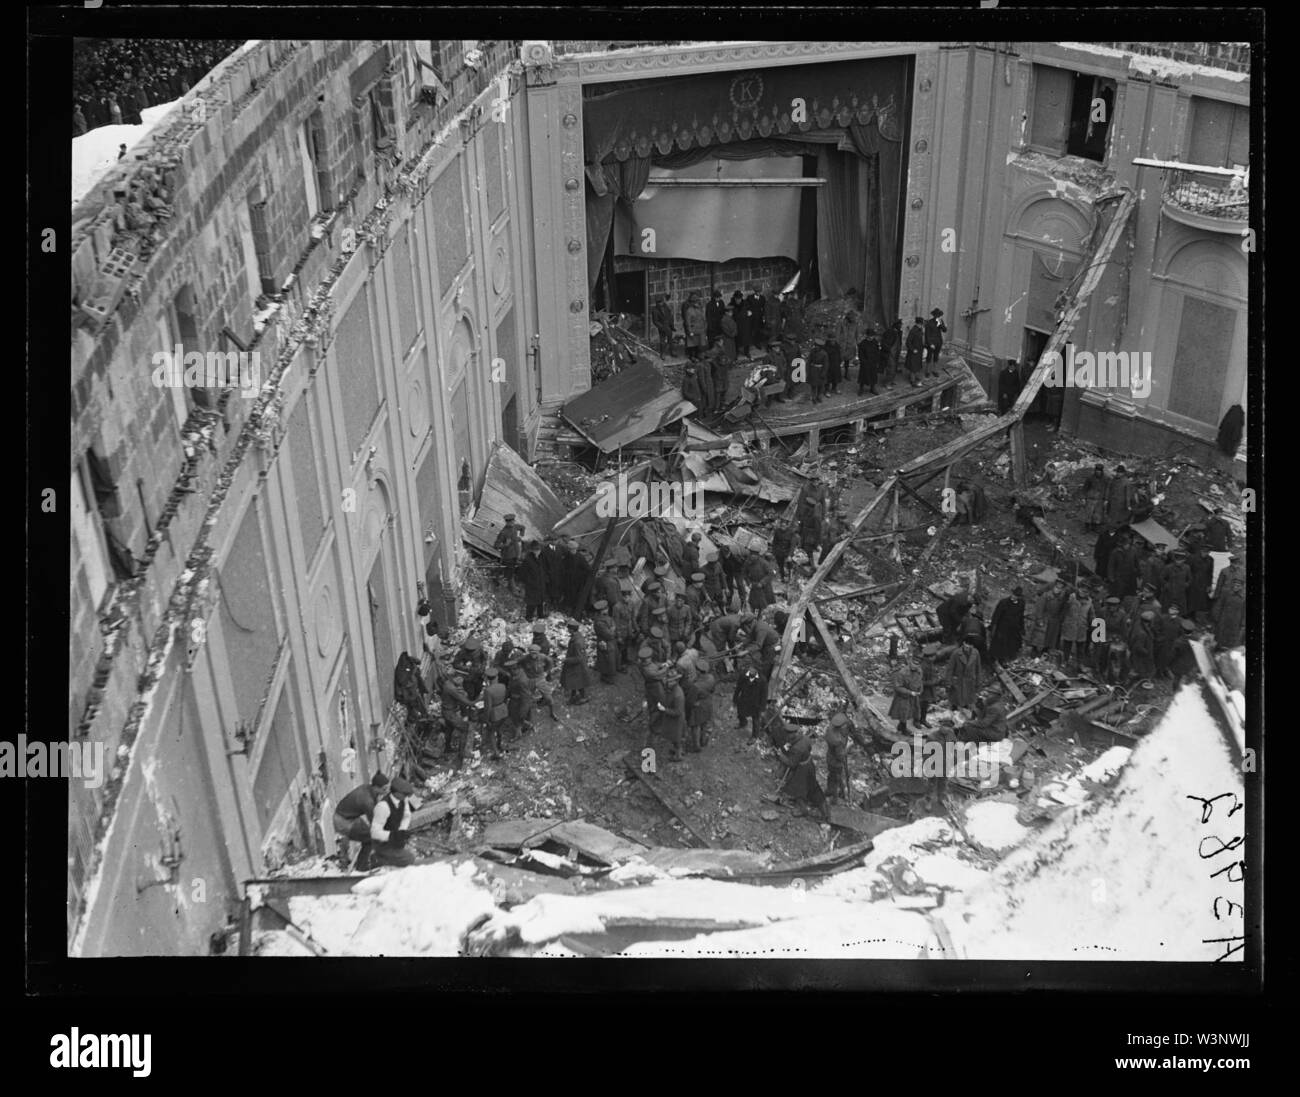 Collapsed roof following snow storm on January 28, 1922. Knickerbocker Theater located on the southwest corner of 18th Street and Columbia Road, N.W., Washington, D.C. - Stock Image